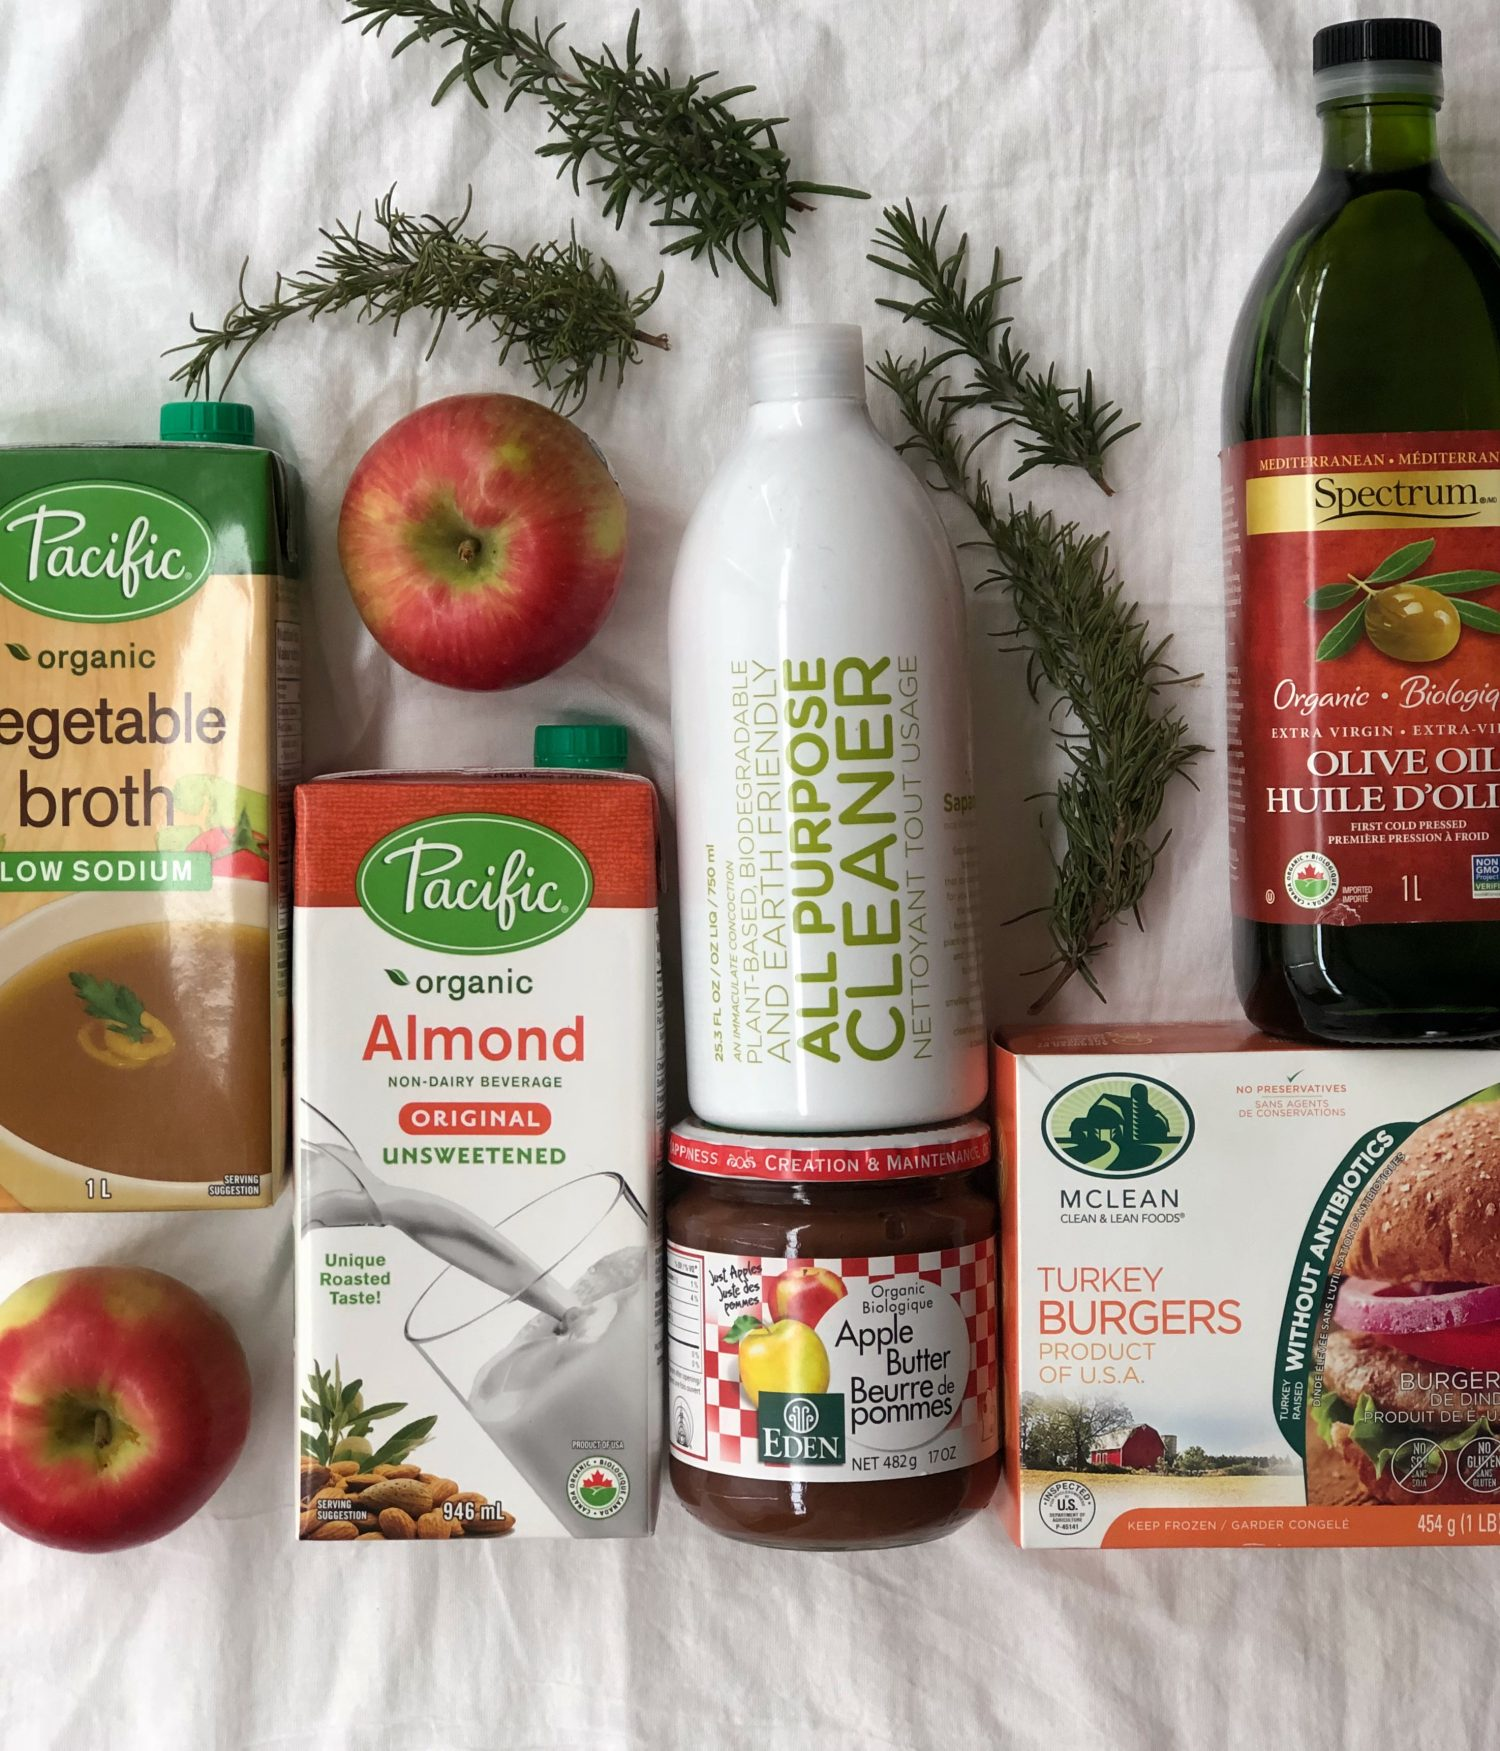 My 10 November Favourite Things at Whole Foods